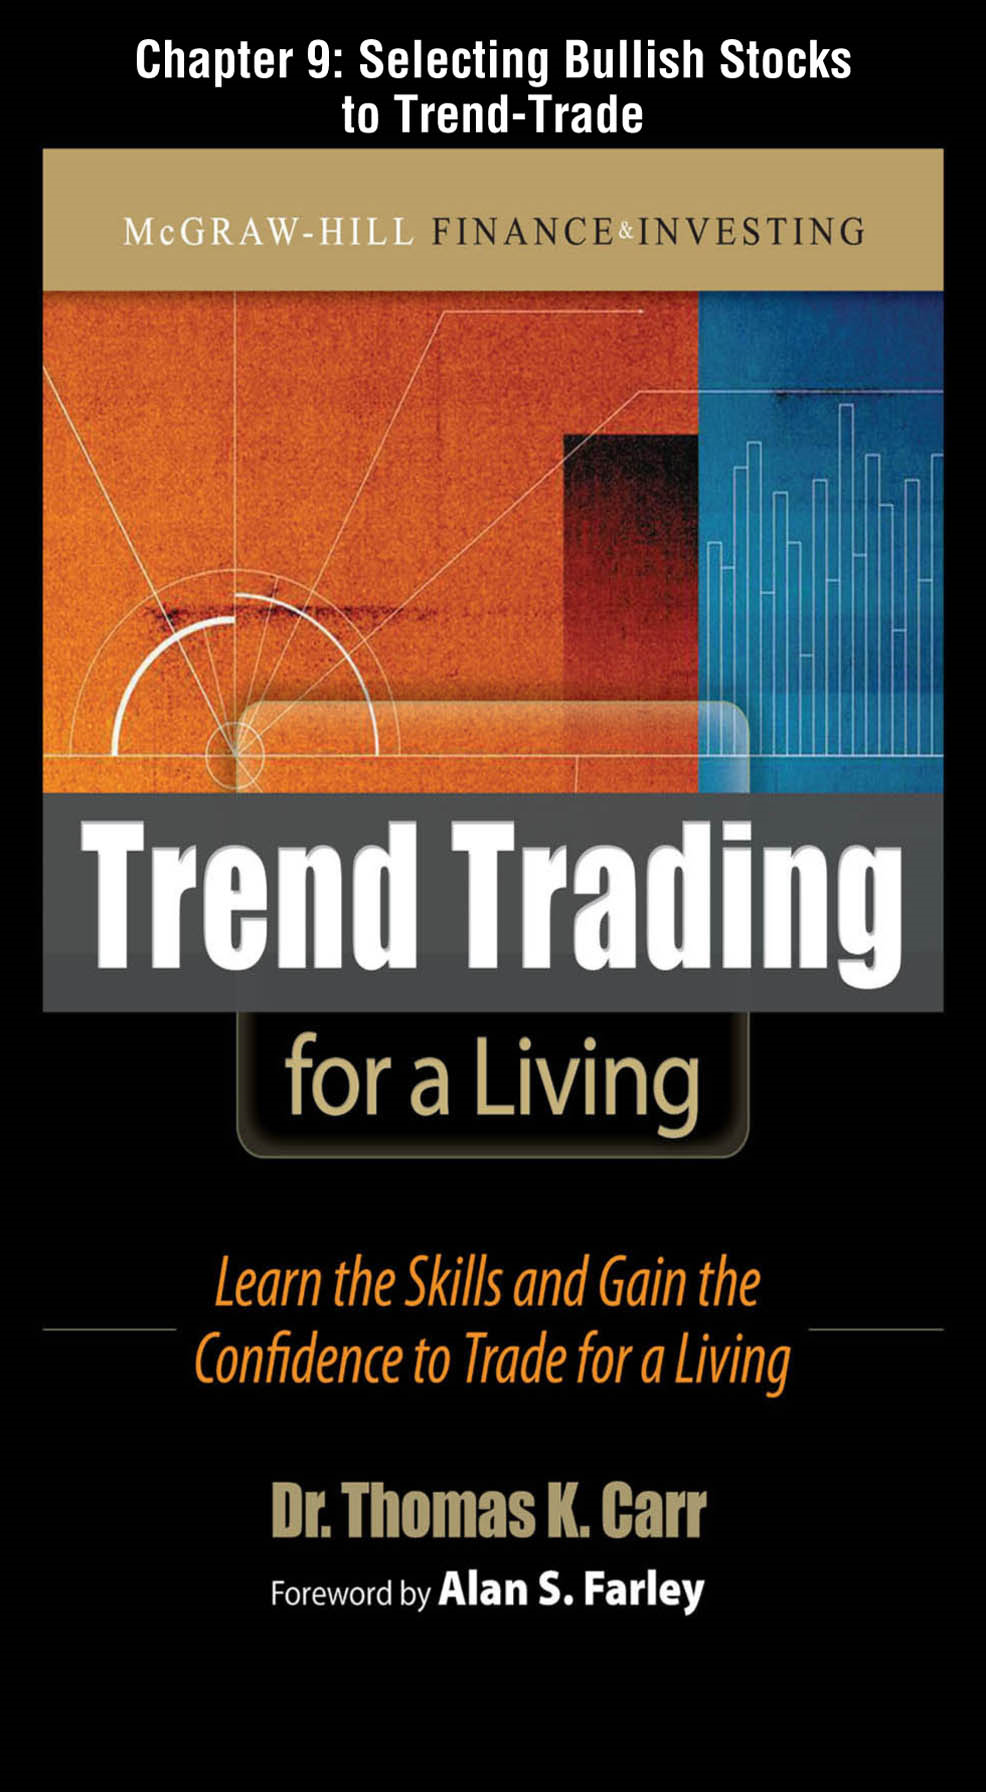 Trend Trading for a Living, Chapter 9 - Selecting Bullish Stocks to Trend-Trade By: Thomas K. Carr